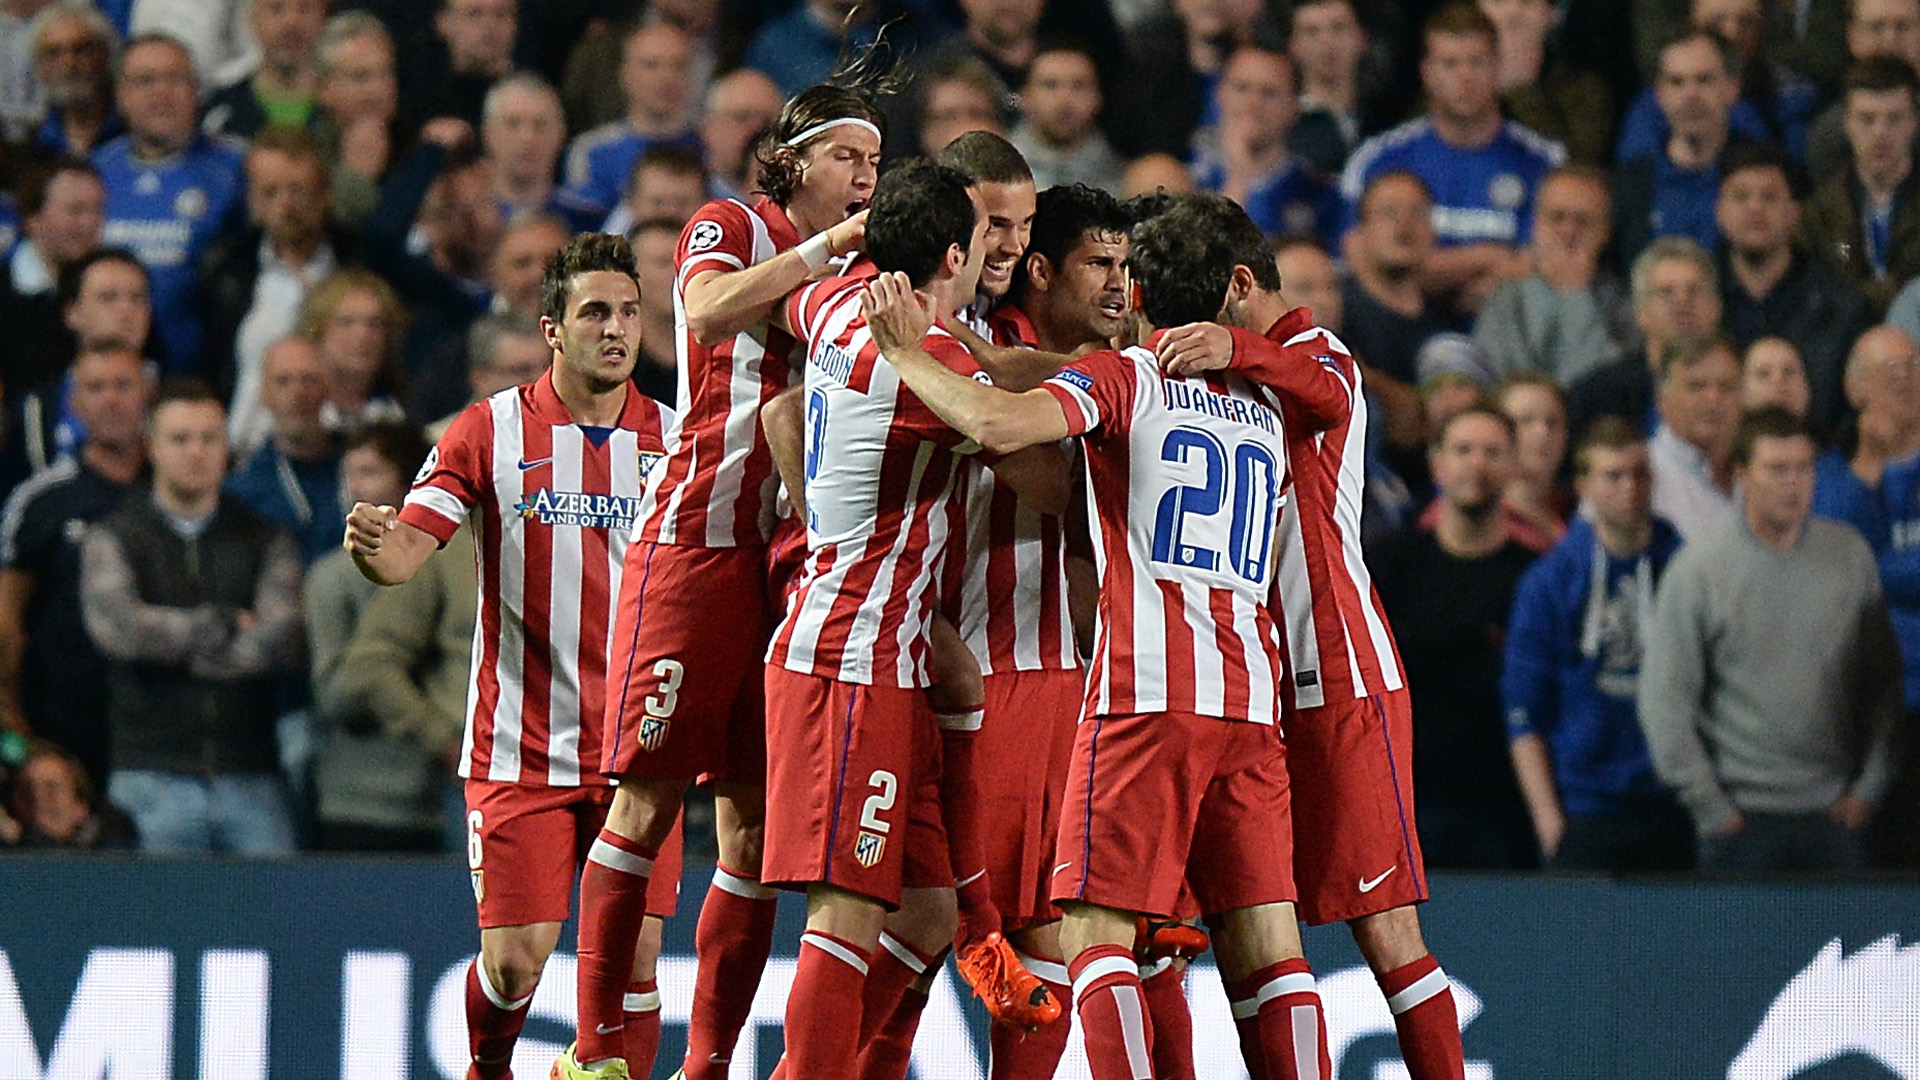 atletico-madrid-FTR-043014.jpg